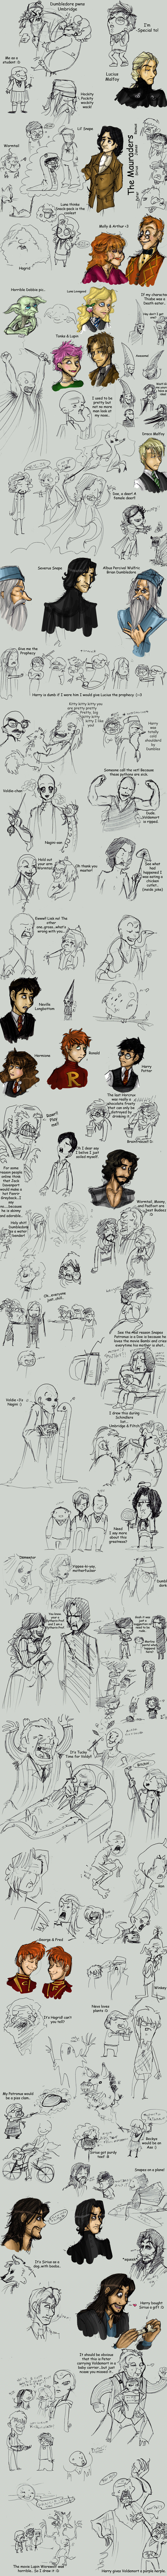 Harry Potter Mondo Sketch Dump by OhSadface